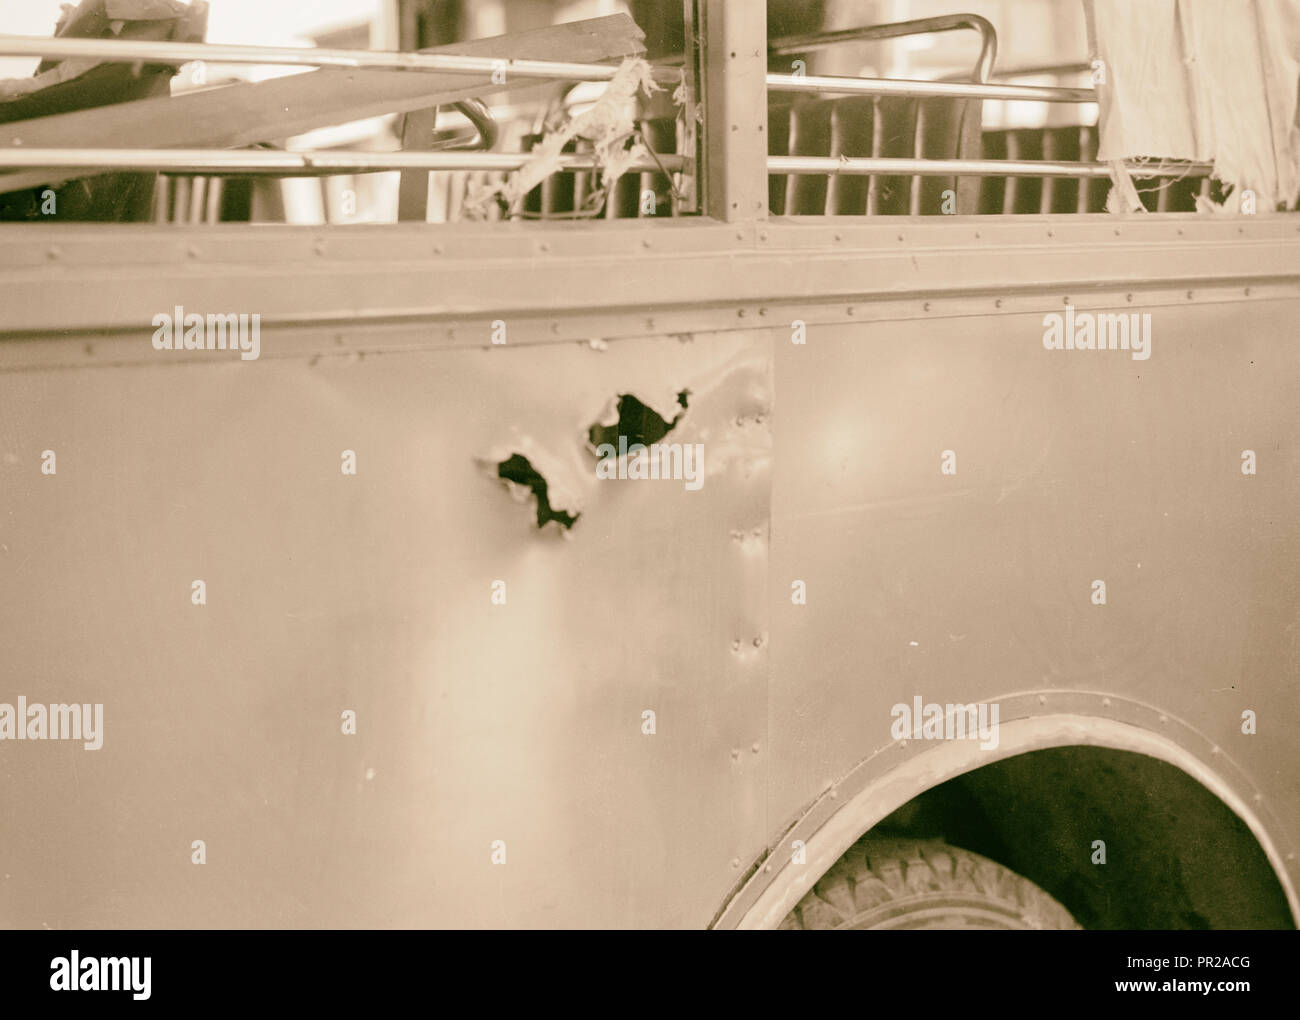 Disturbance. Attack on an Arab bus July 4, 1938. An Arab National buss punctured by exploded mine, Middle East, Israel - Stock Image